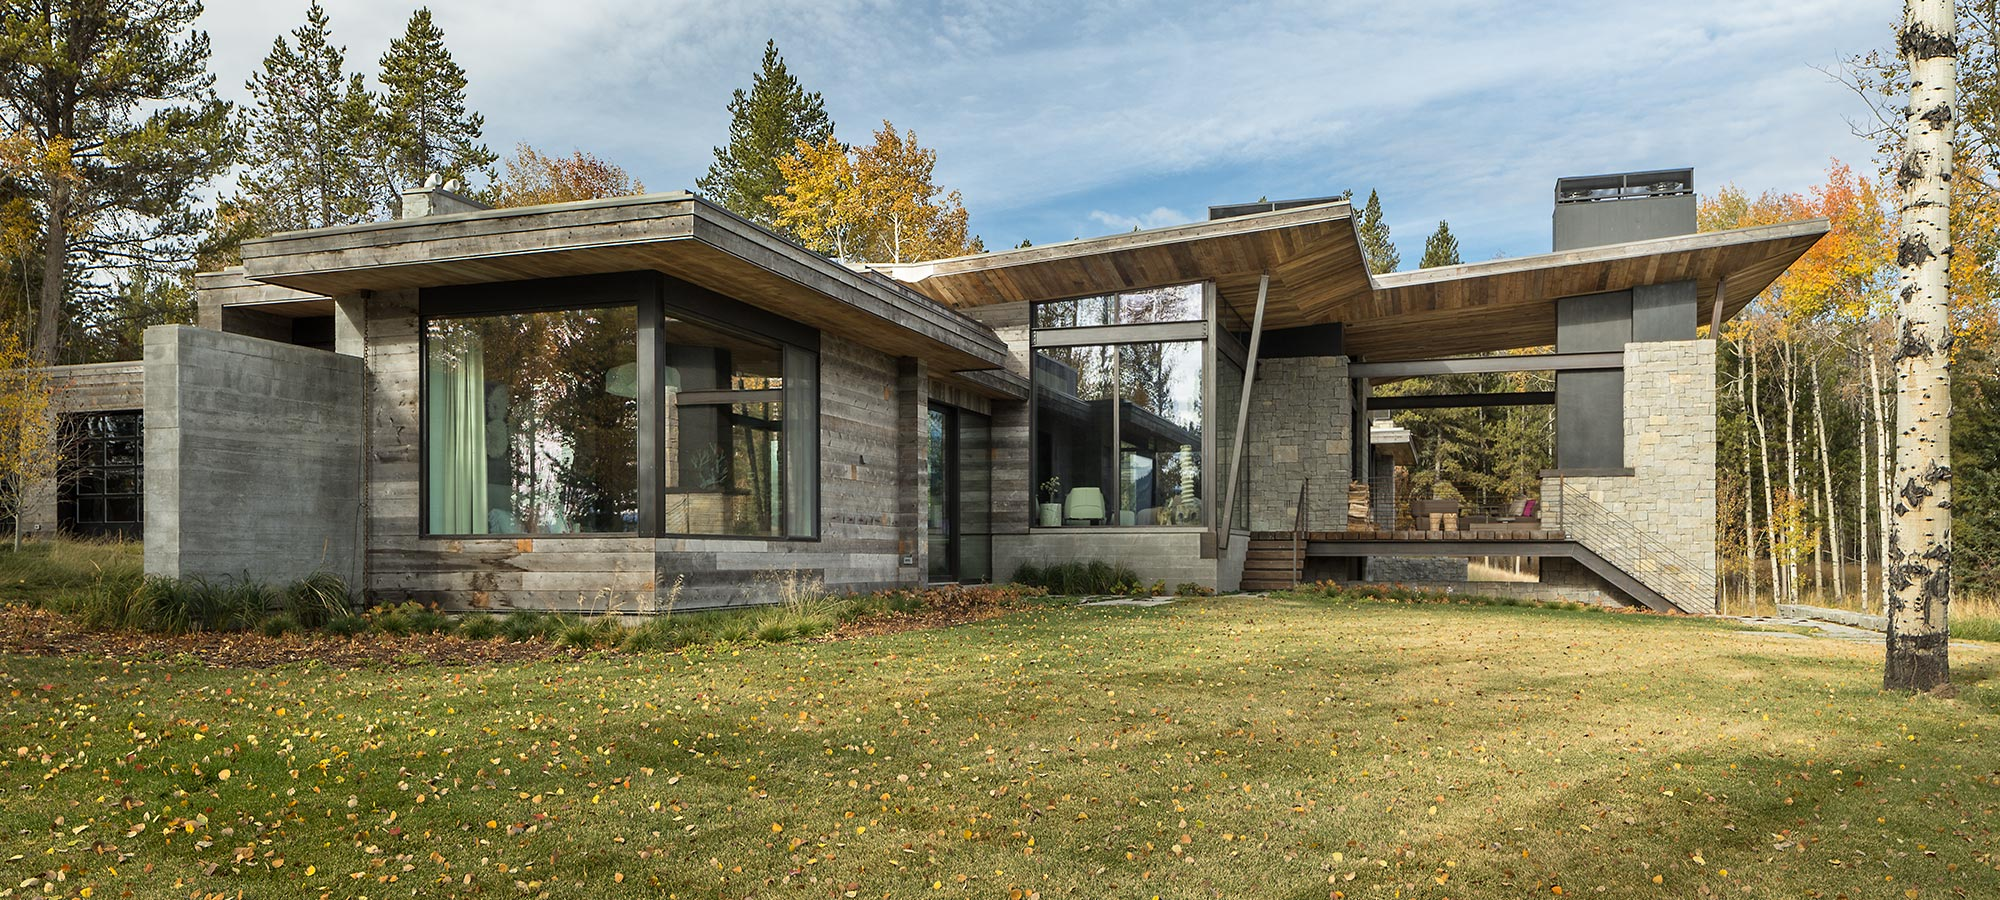 Moosebluff House Montana by Pearson Design Group